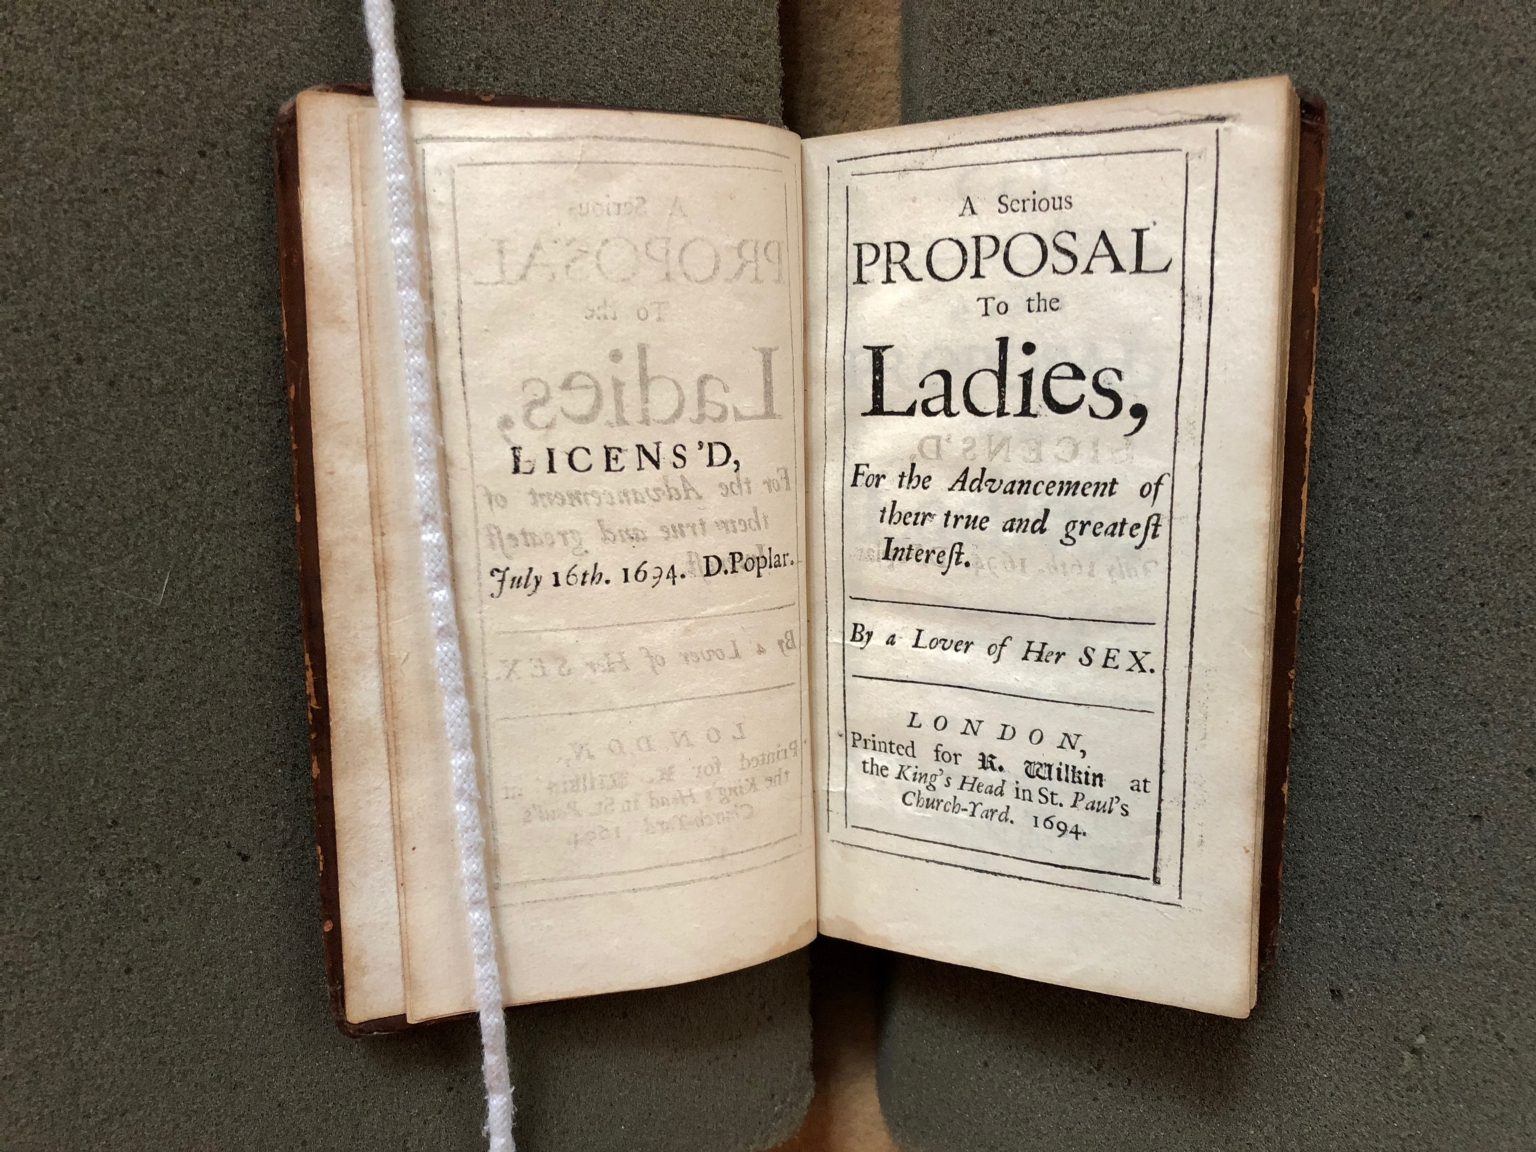 A serious proposal to the ladies, for the advancement of their true and greatest interest. By a lover of her sex.